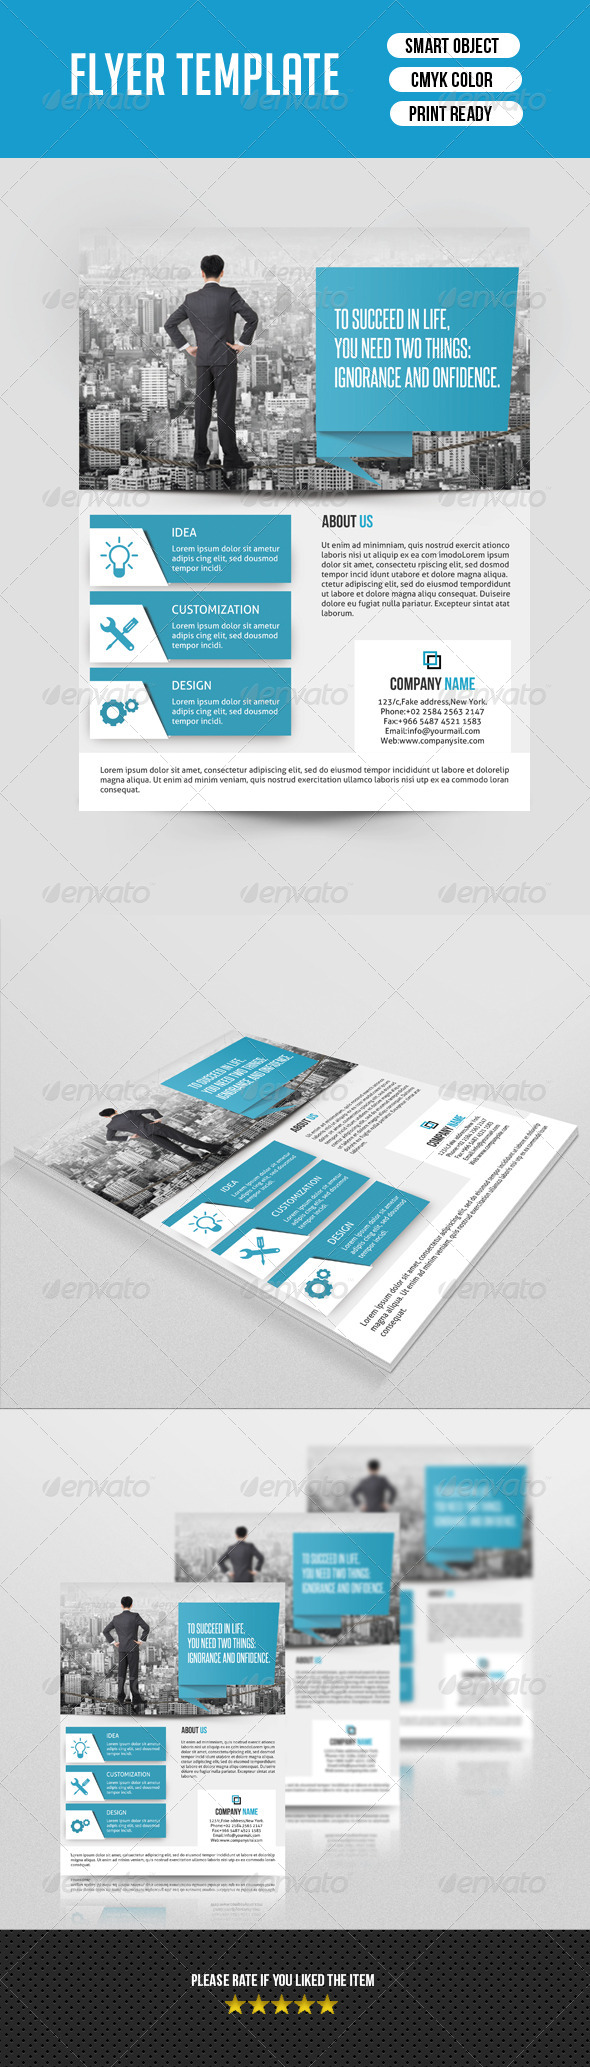 Corporate Flyer Template-V123